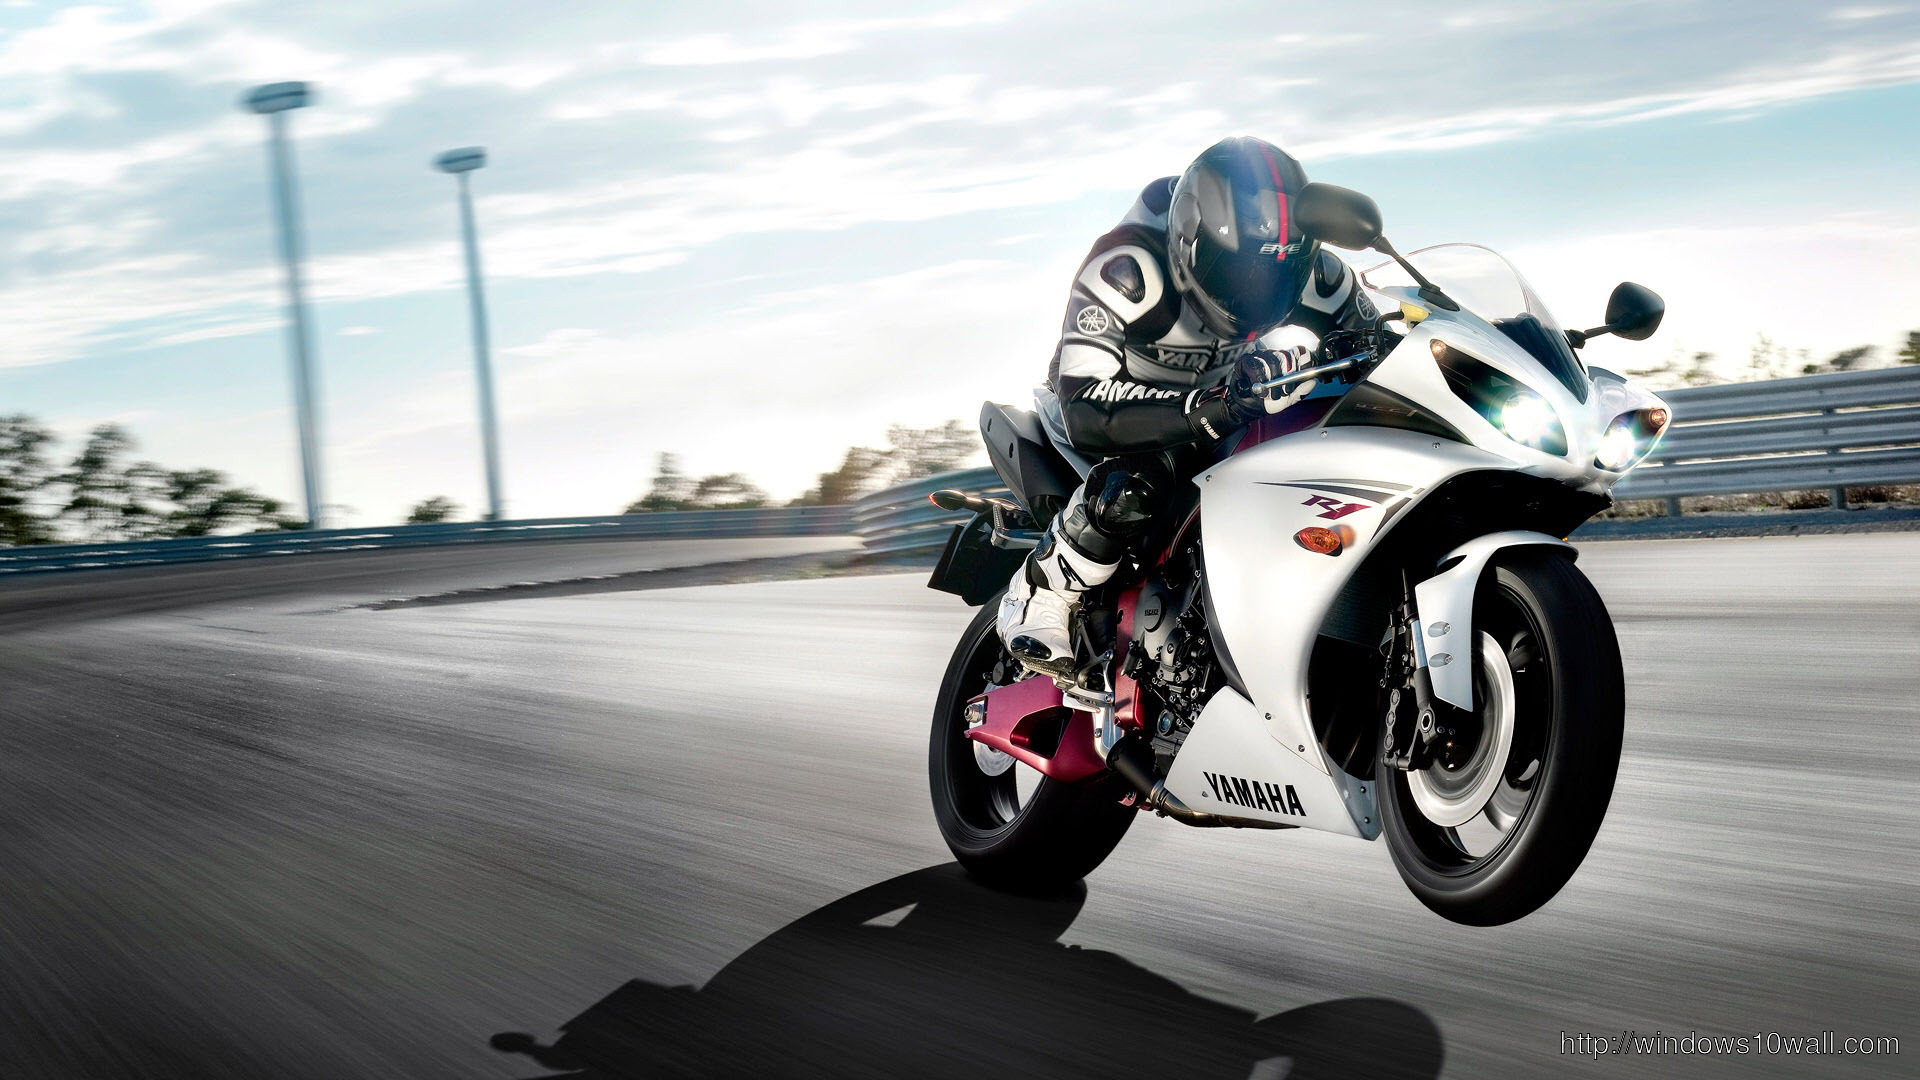 Yamaha r1 race sports bike Background Wallpaper 55